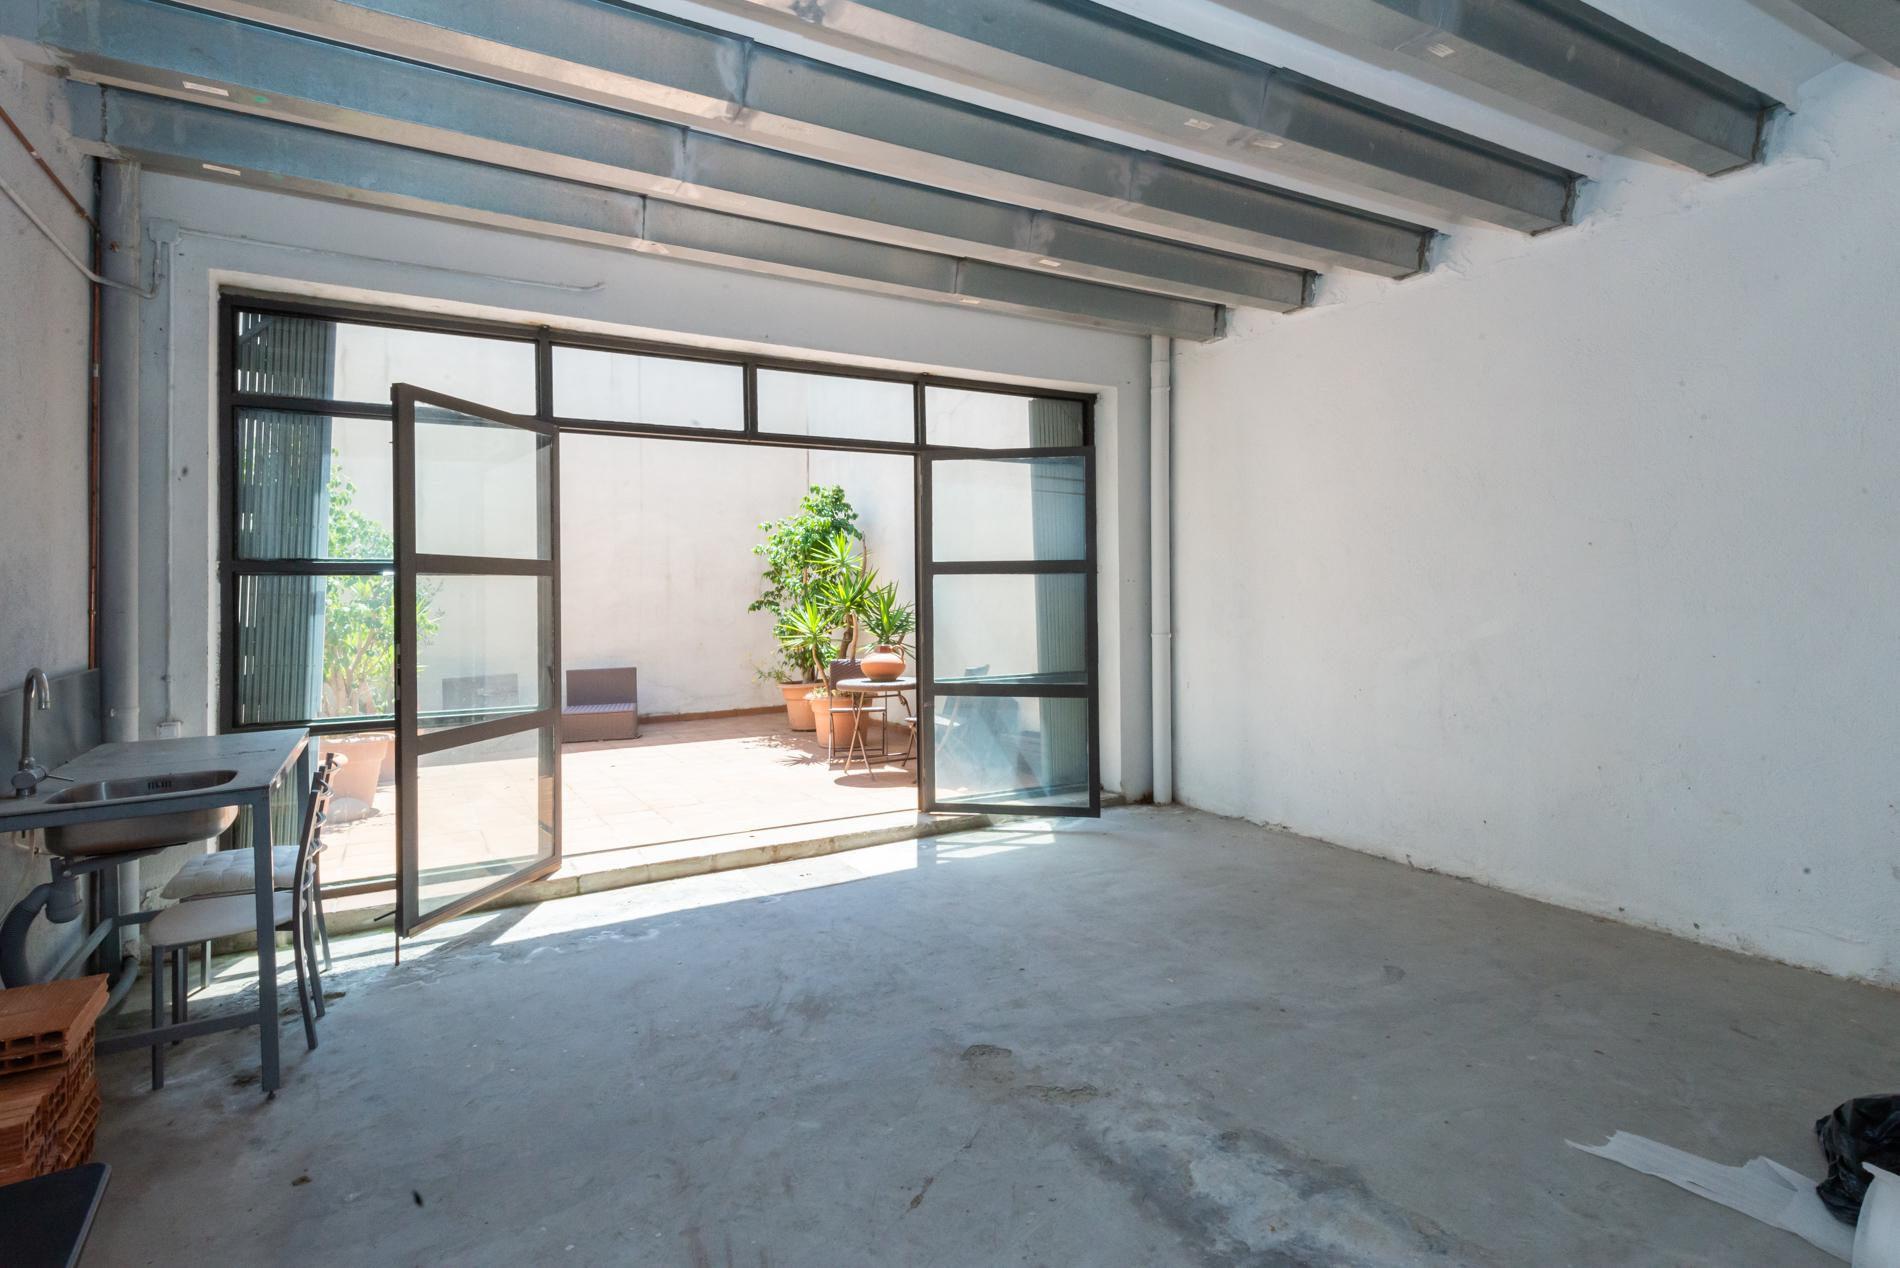 239277 Semi-detached house for sale in Sants-Montjuïc, Sants 30